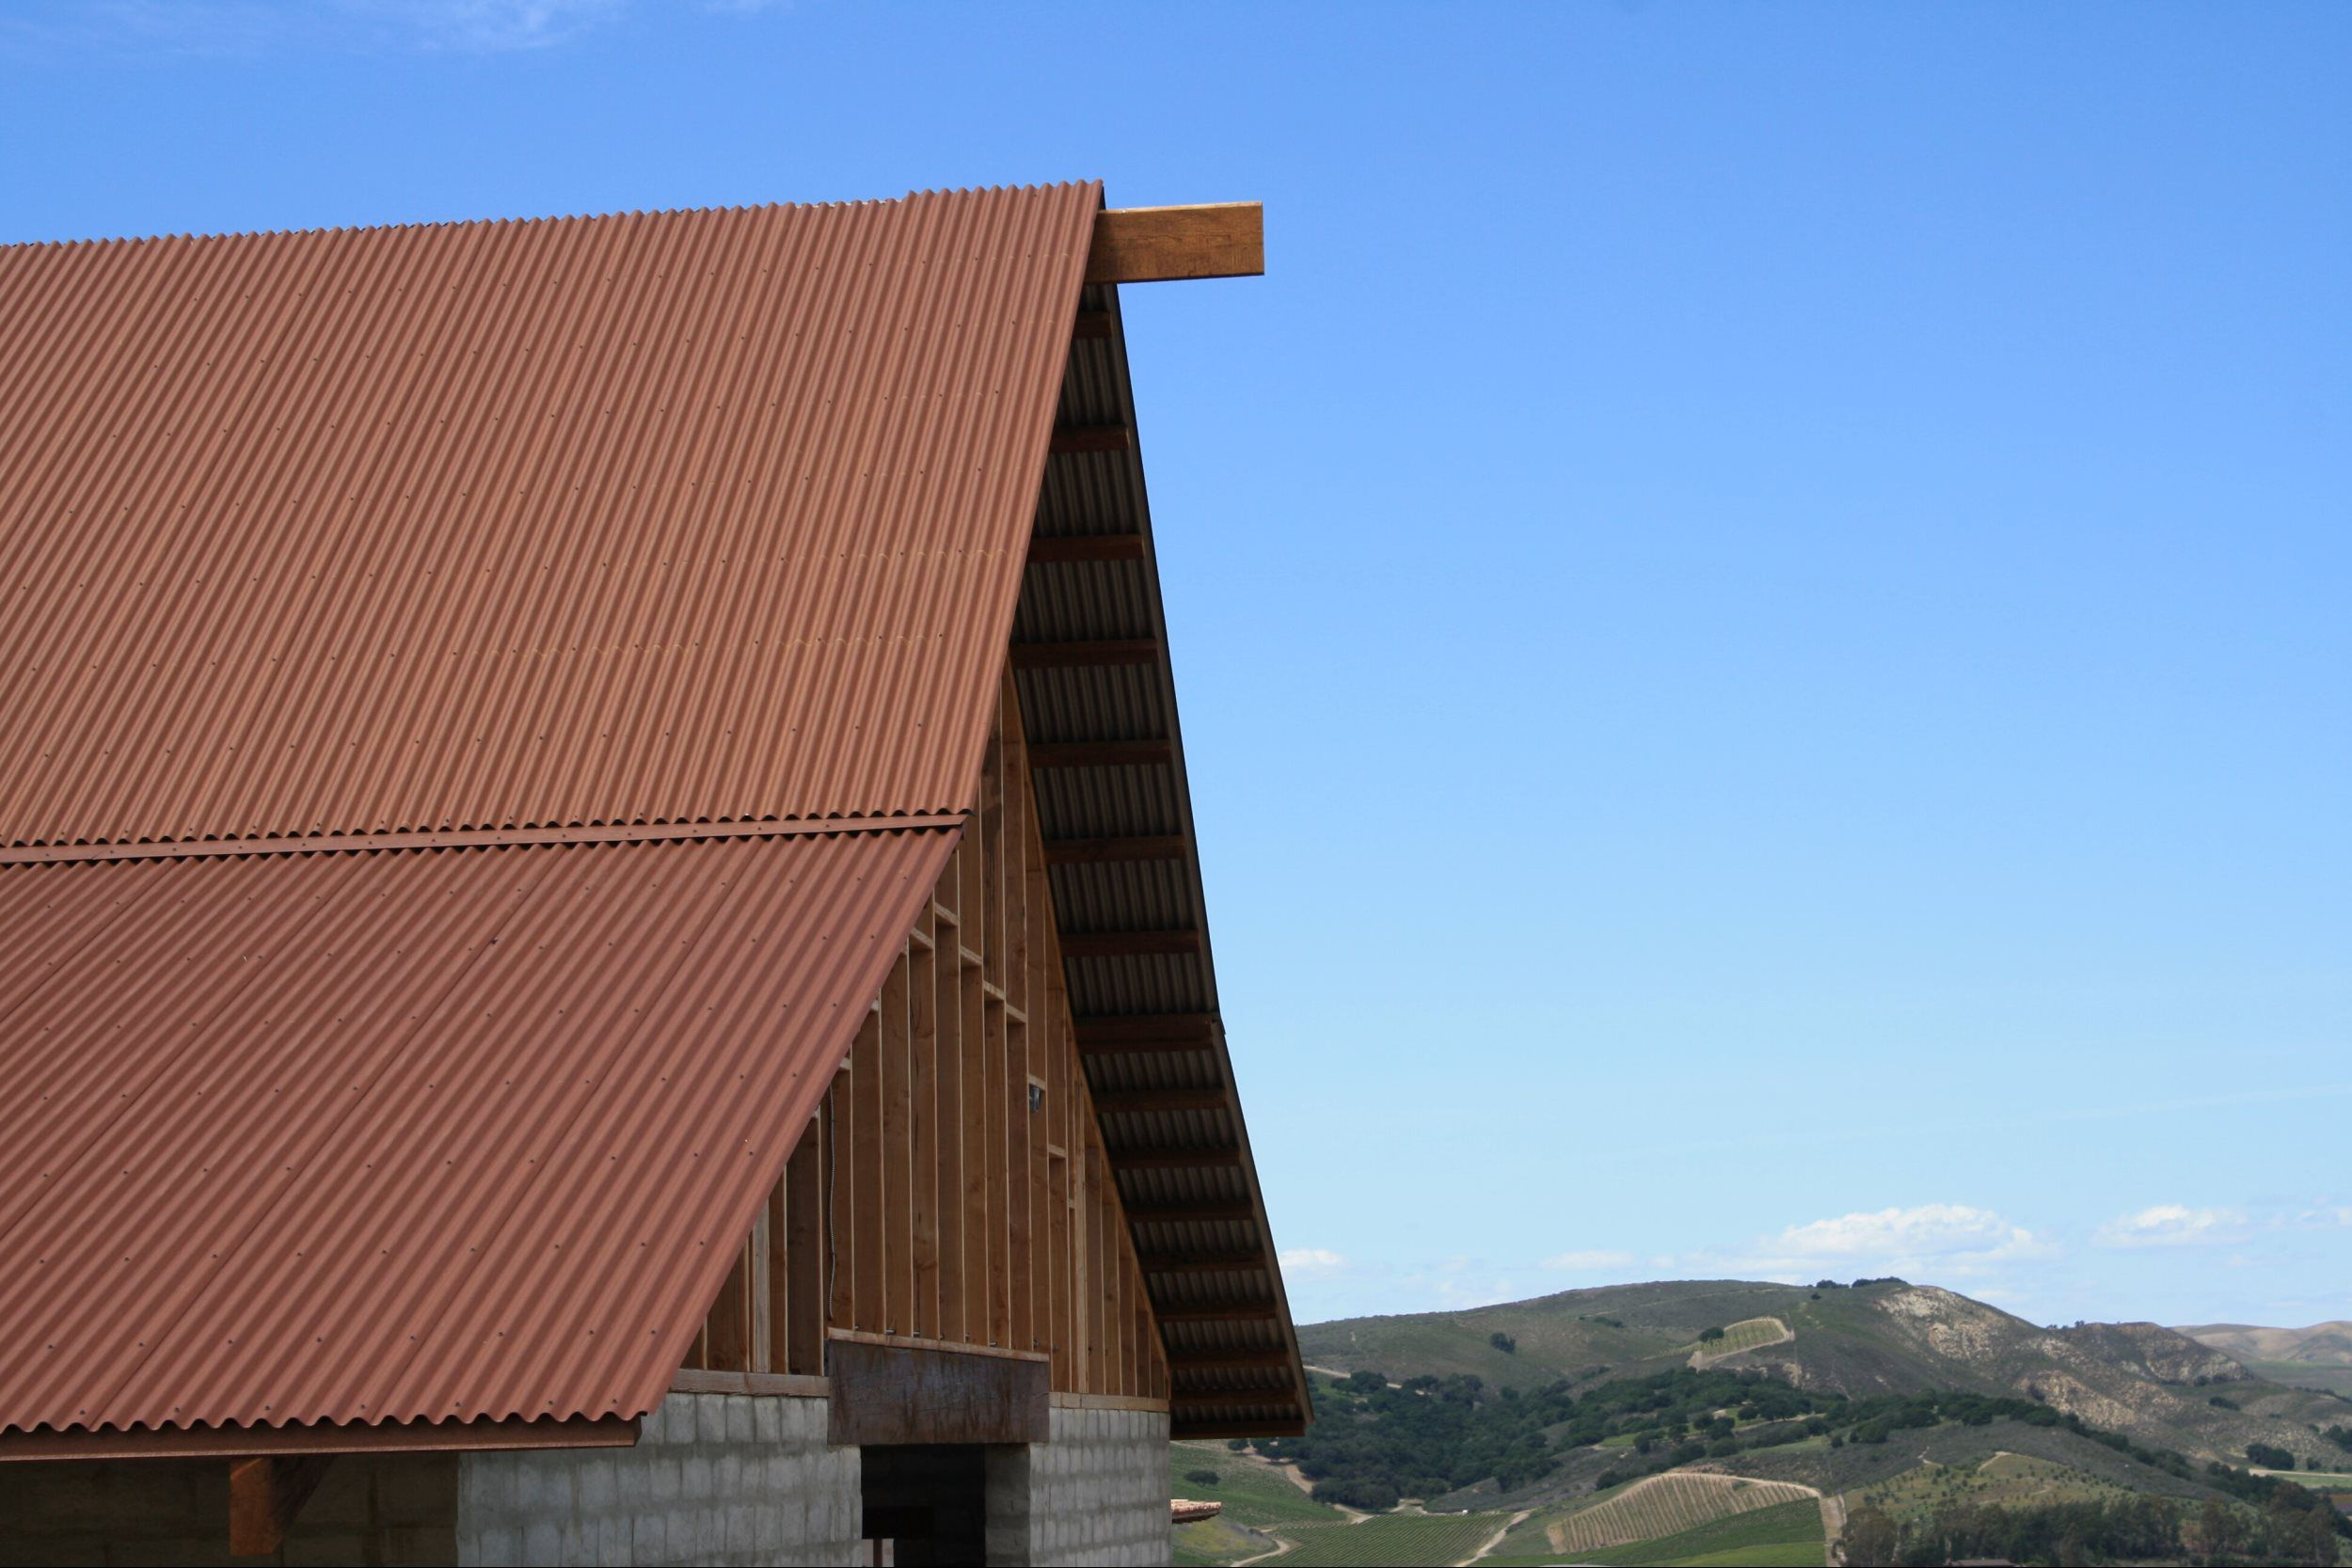 Kynar Roofing Architecture Architectural Sheet Metal Wall